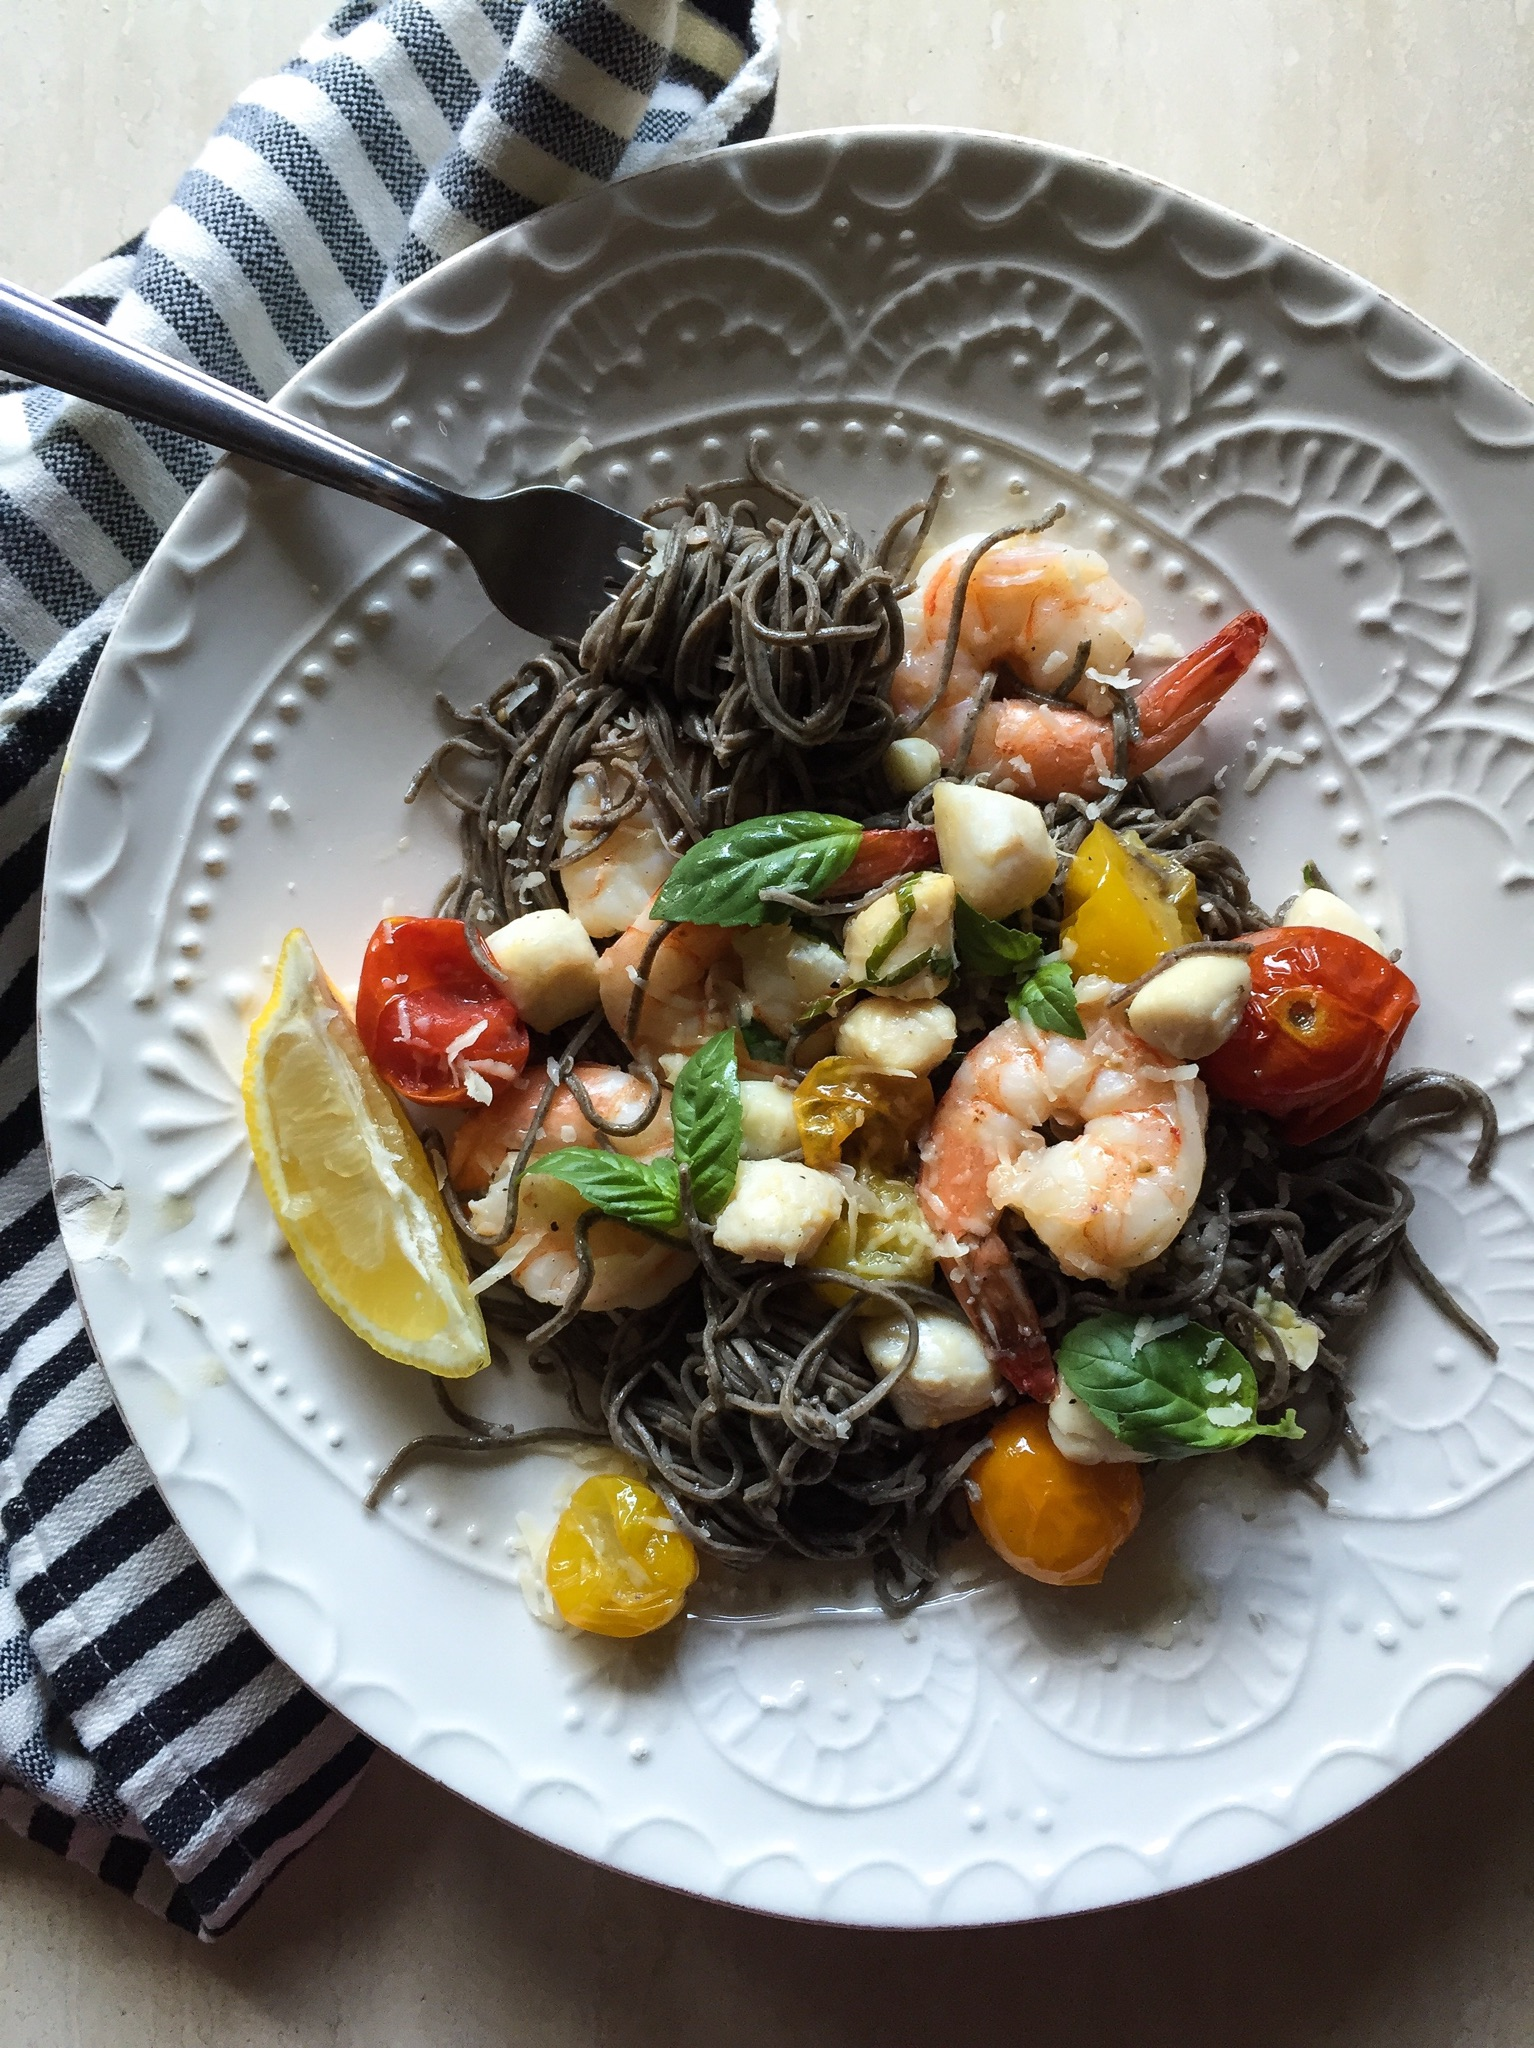 Seafood Black Bean Pasta with Roasted Tomatoes in Garlic Truffle Sauce